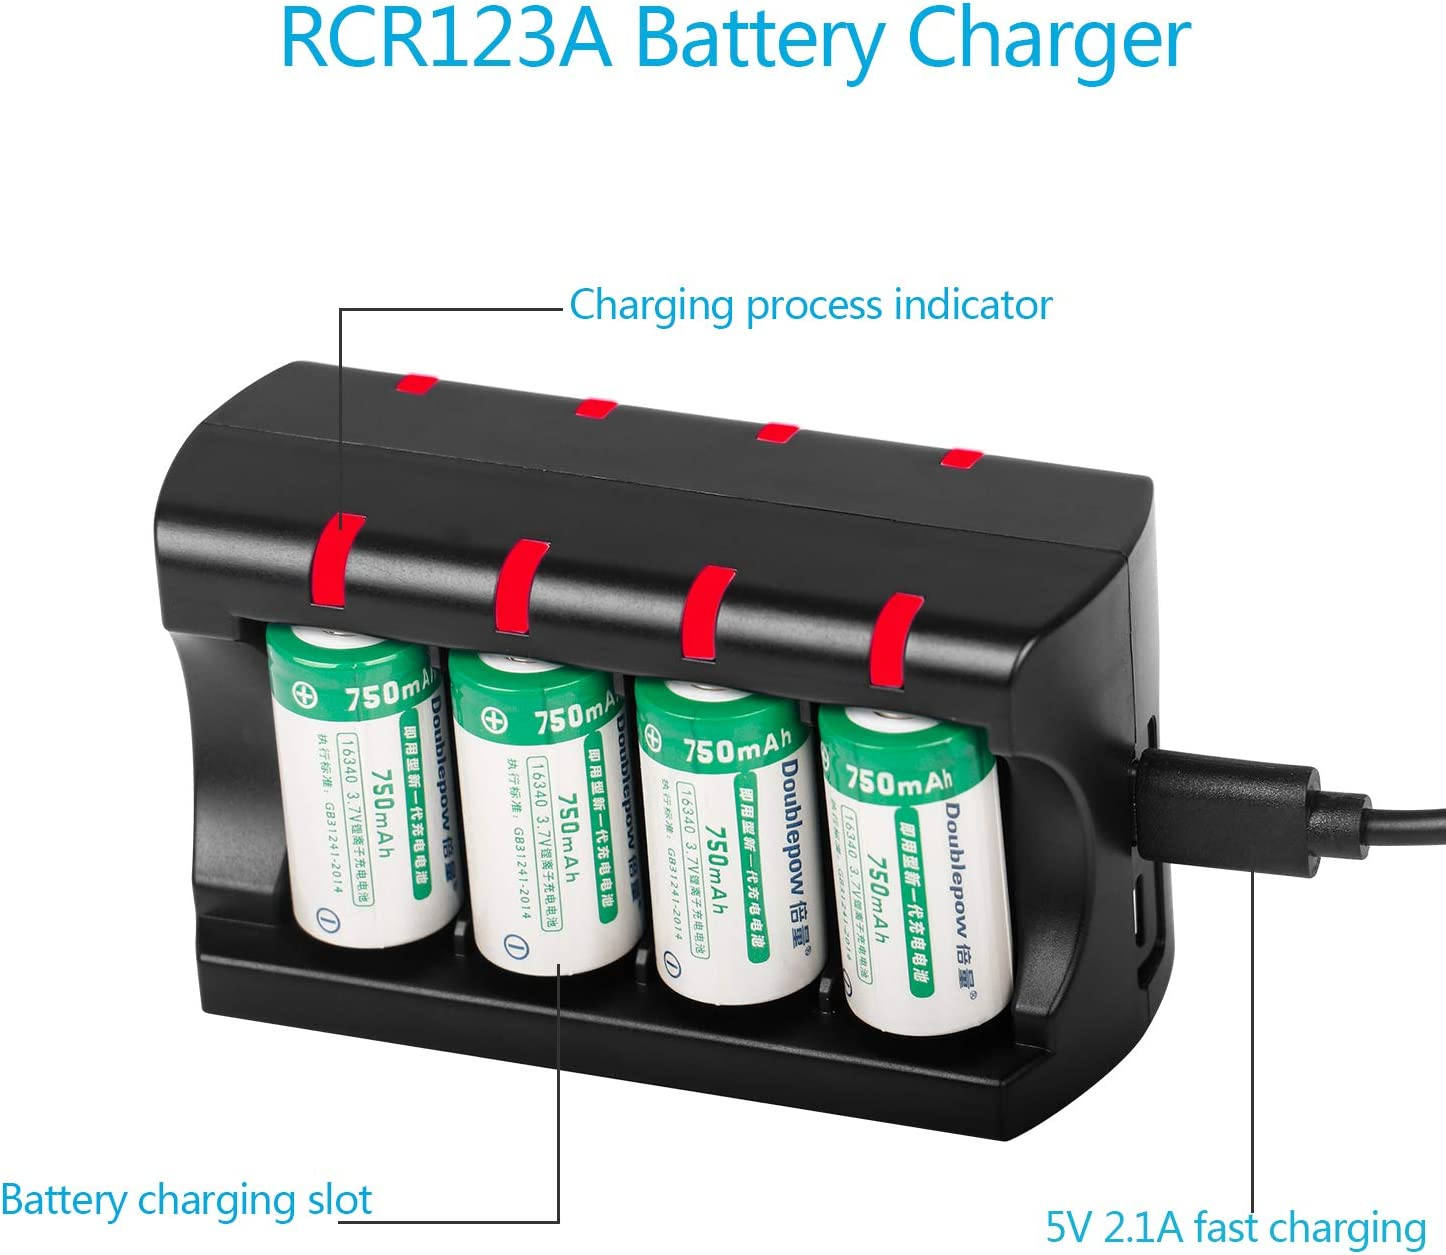 BEESCLOVER 8 Ports RCR123A Battery Charger 16340 1635016360 3.7V Arlo Charger for ce